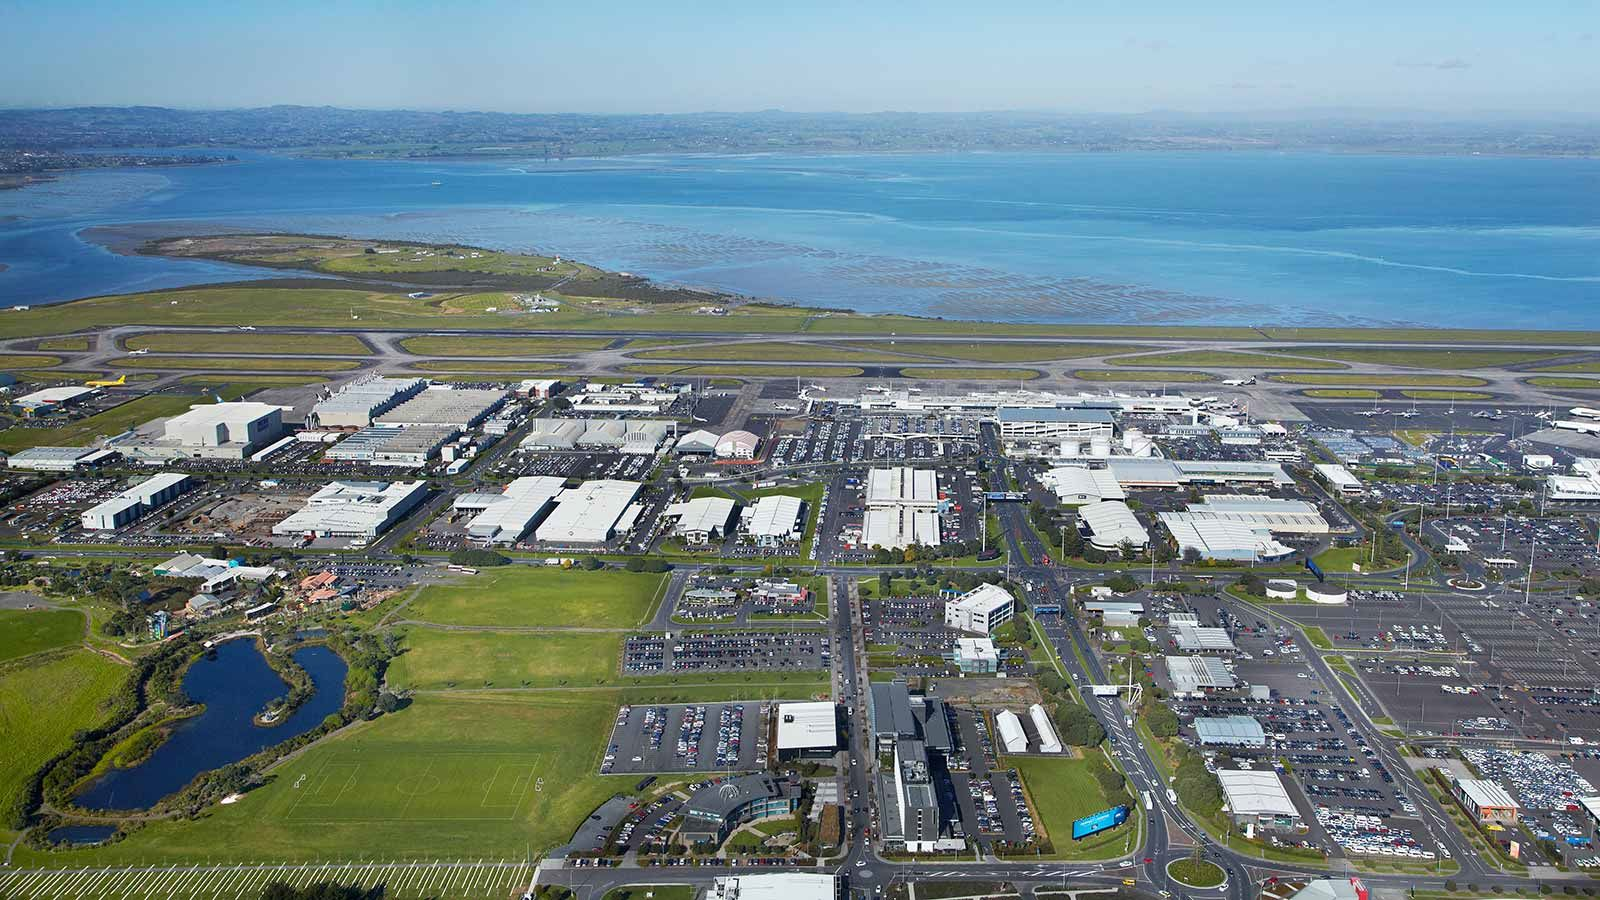 Auckland Airport Aerial View - Mace Group